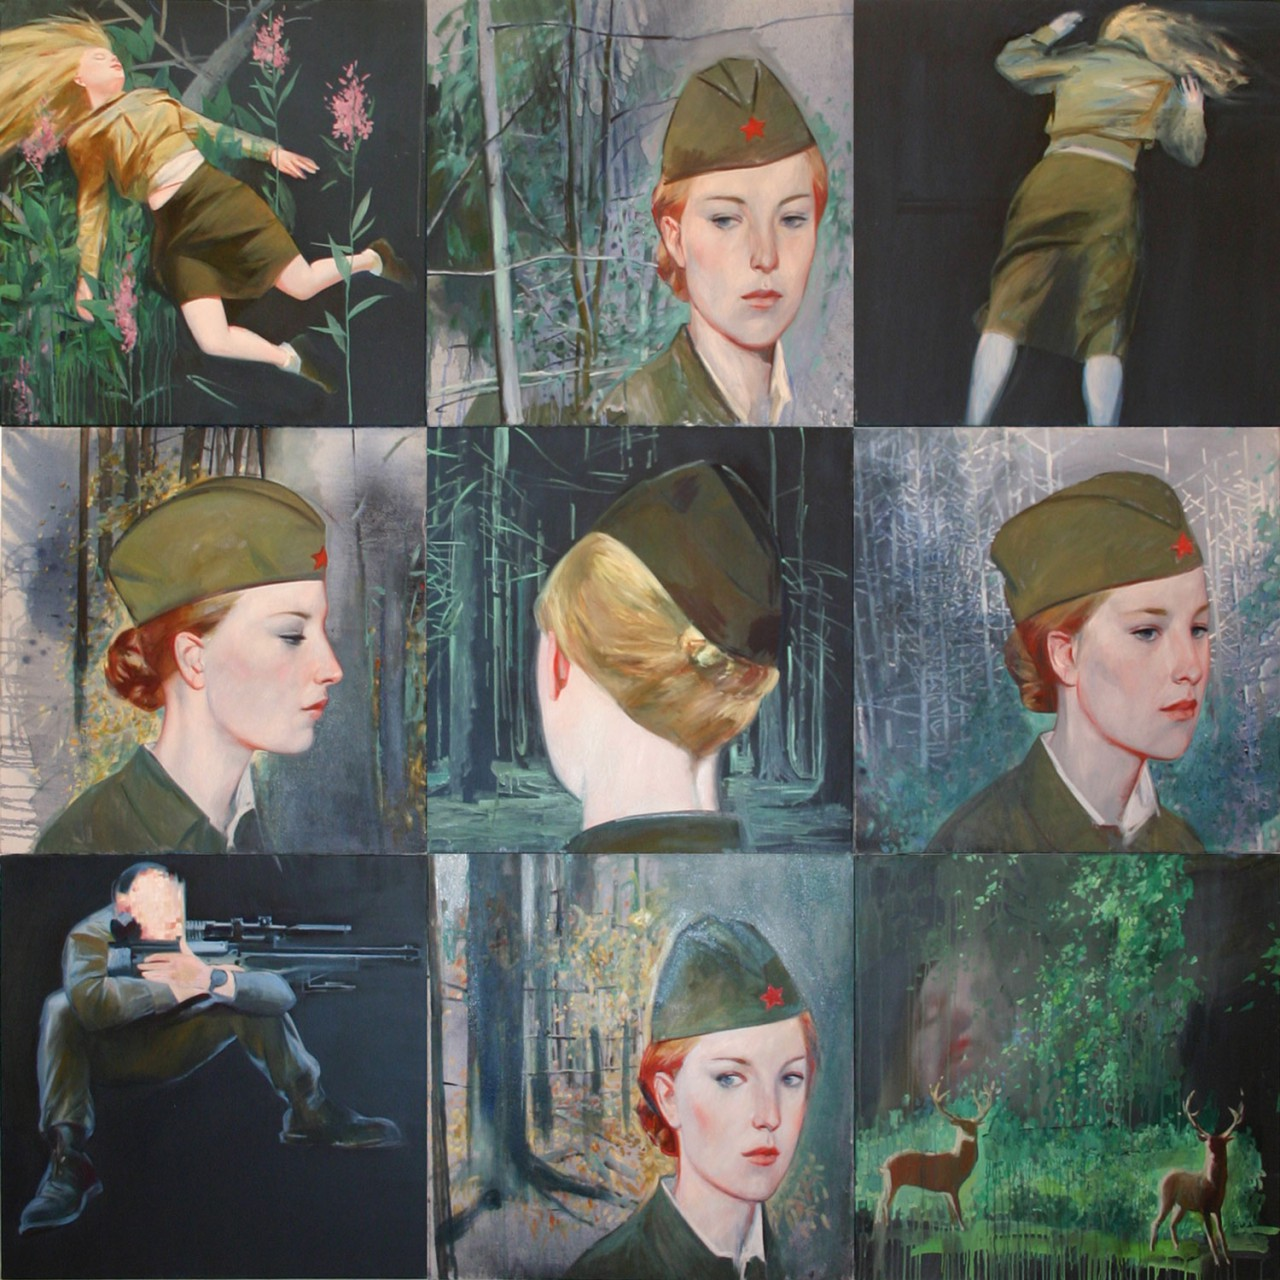 Soldiers II | 2007 | Oil on canvas - polyptych | 240 x 240 cm